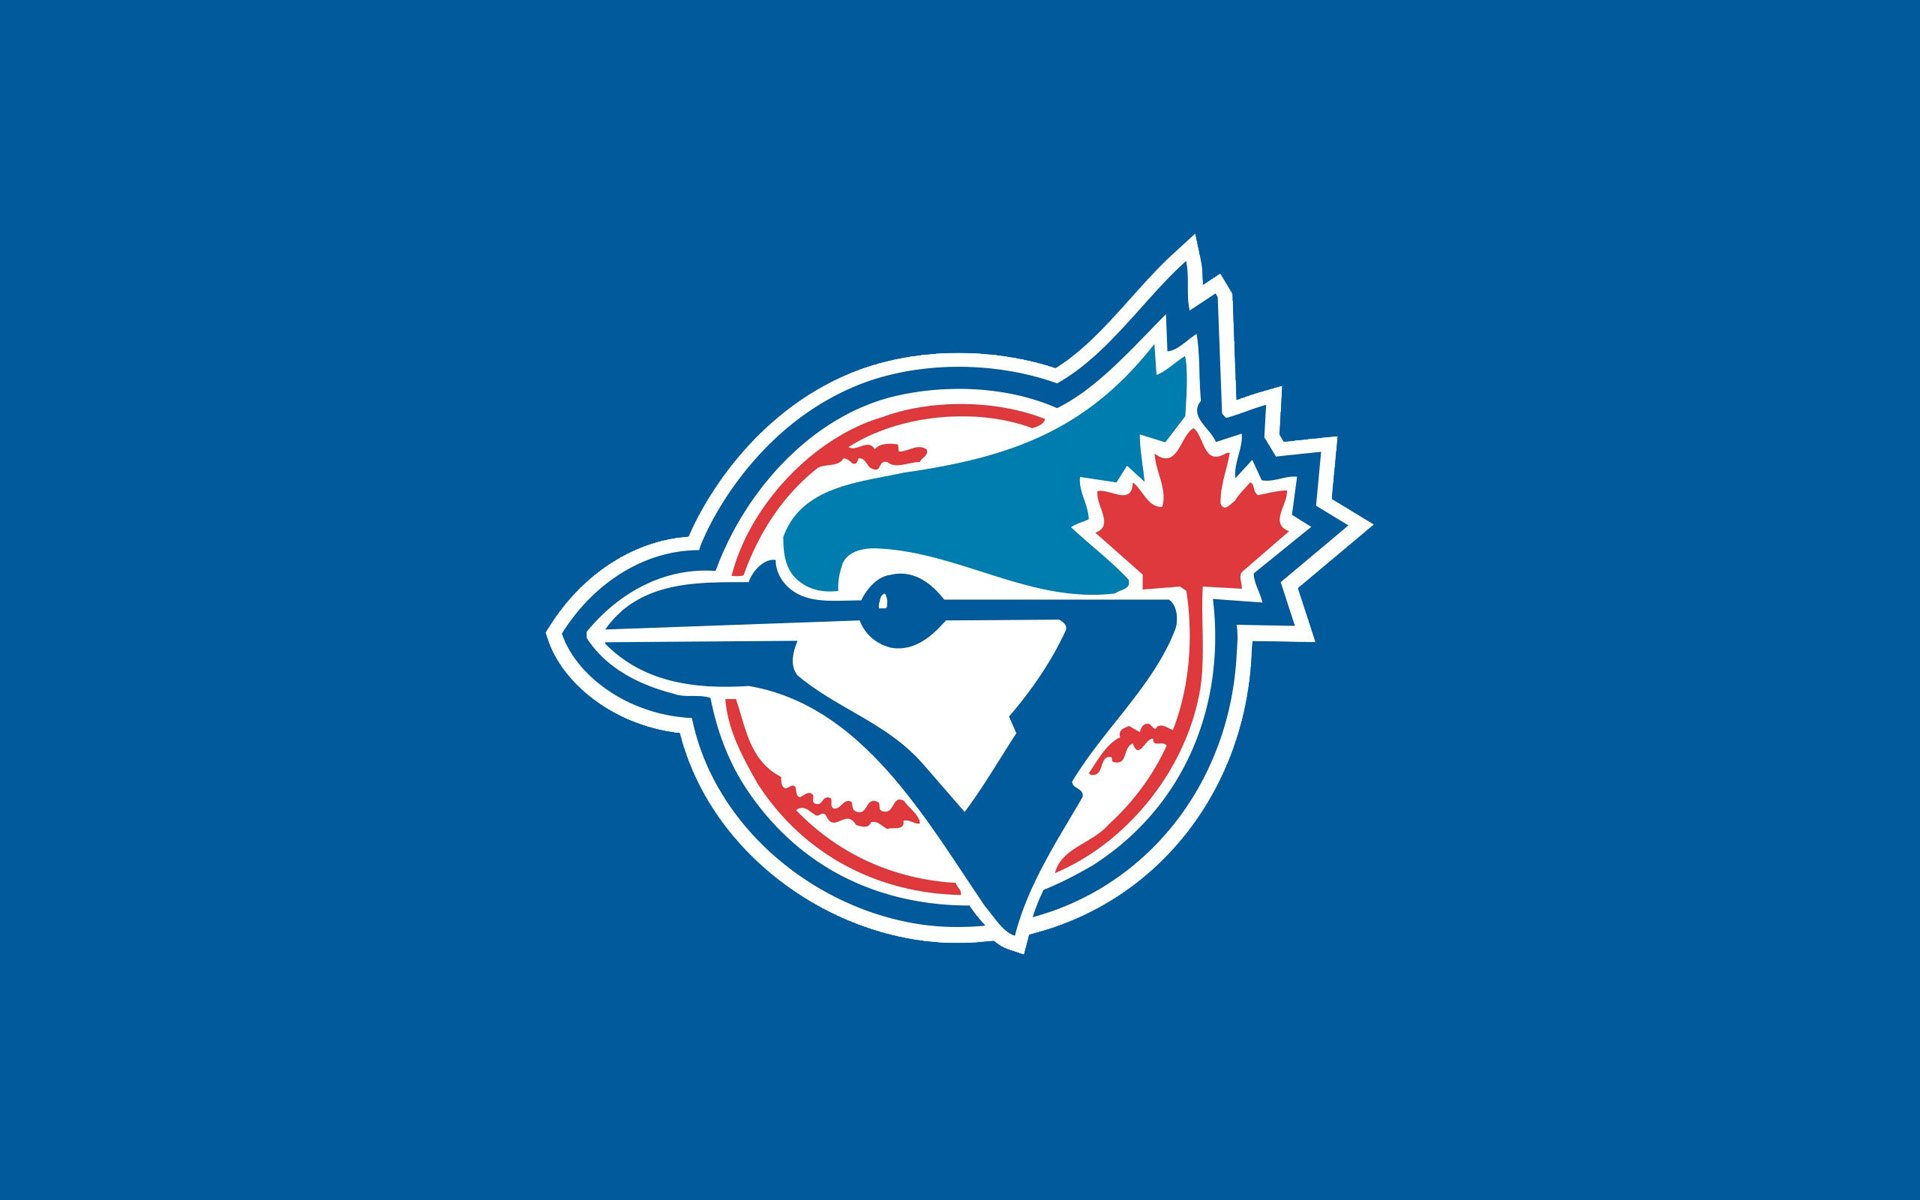 Wallpaper Toronto Blue Jays Logo HD Wallpaper Upload at April 27 1920x1200